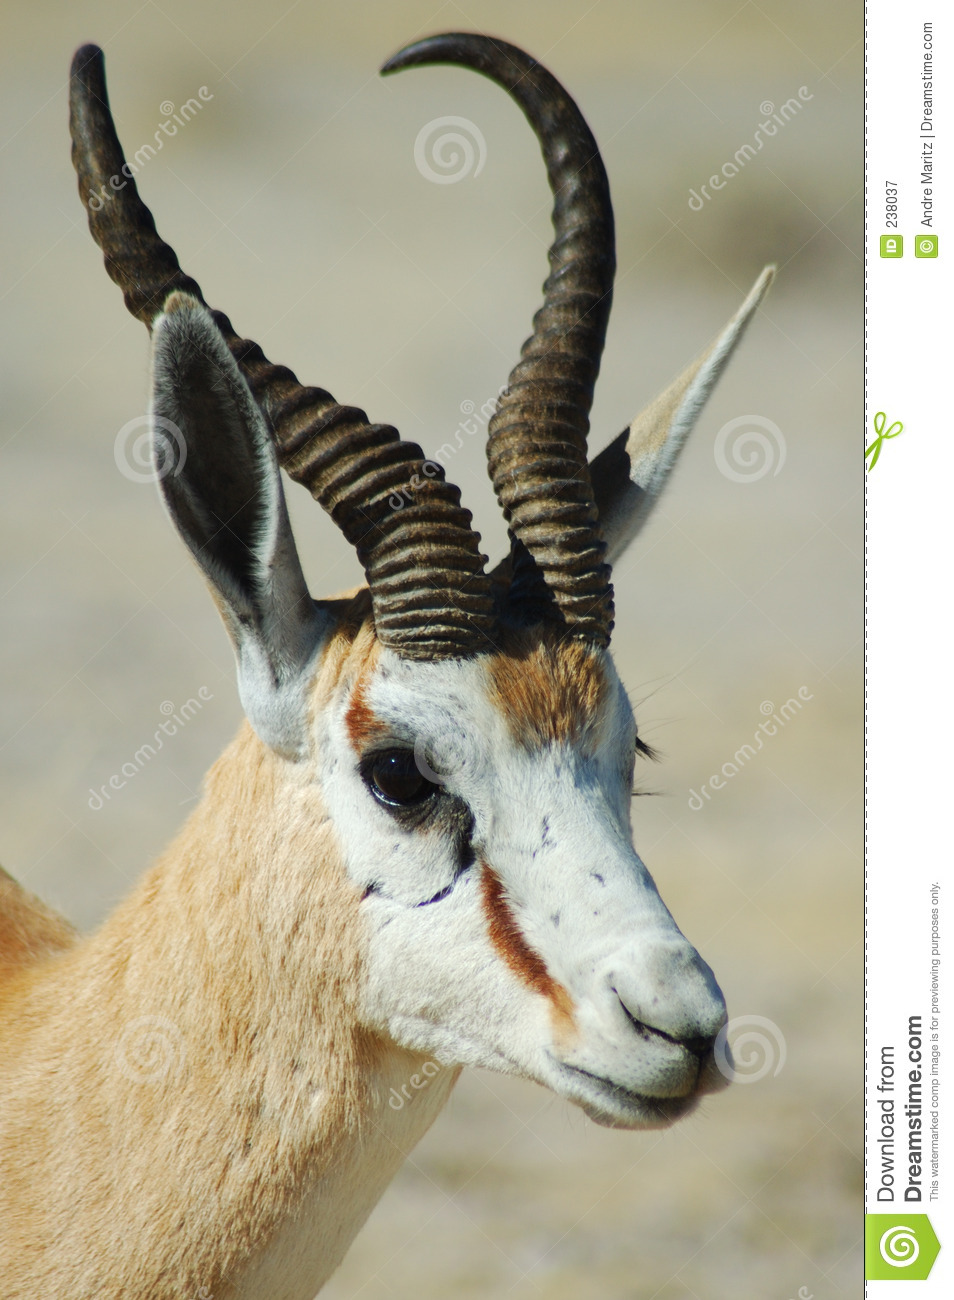 clipart springbok - photo #30